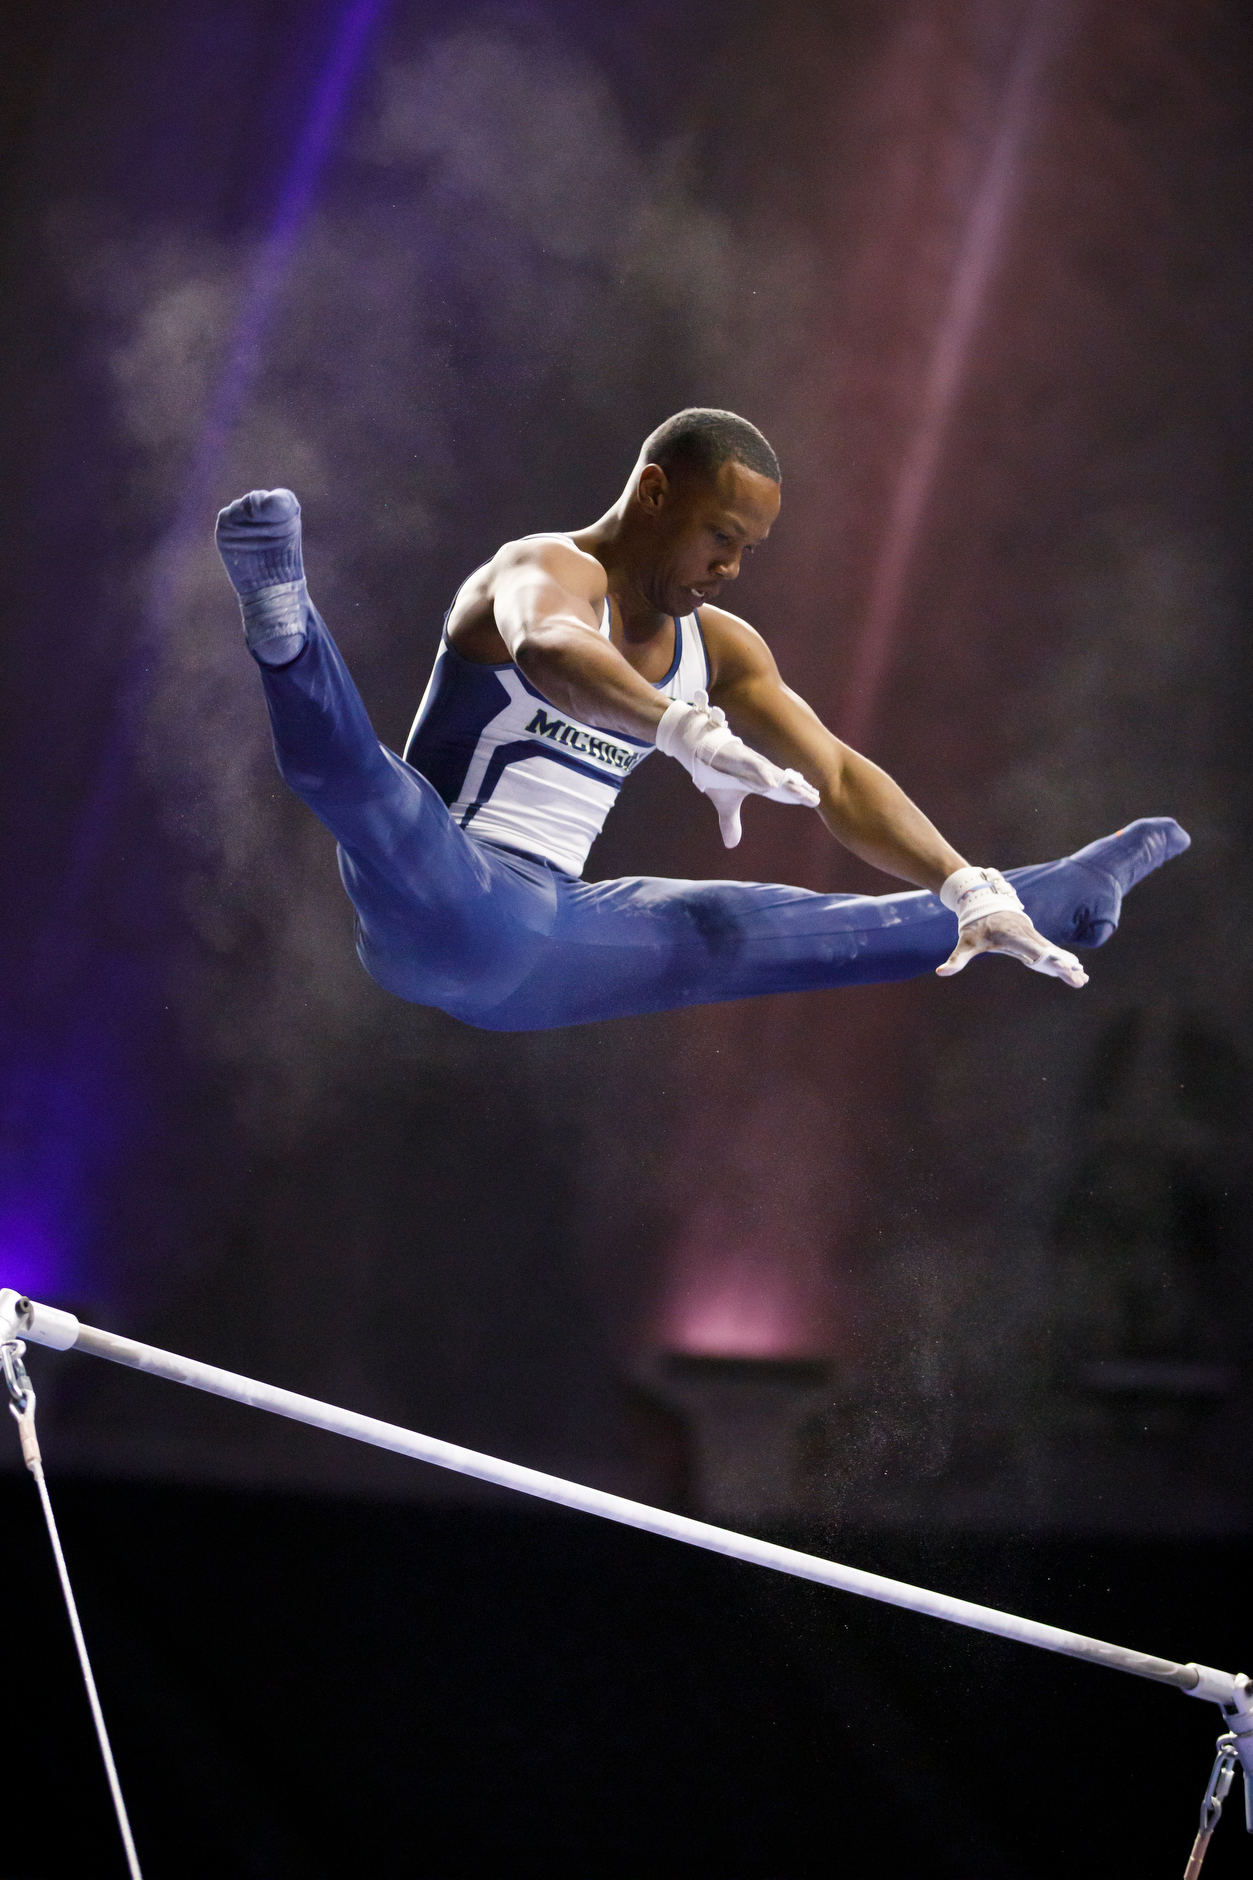 Michigan's Emyre Cole competes on the high bar at the NCAA Men's Gymnastics Championships on Friday, April 19, 2019, at the State Farm Center in Champaign, Illinois. (Photo by James Brosher)